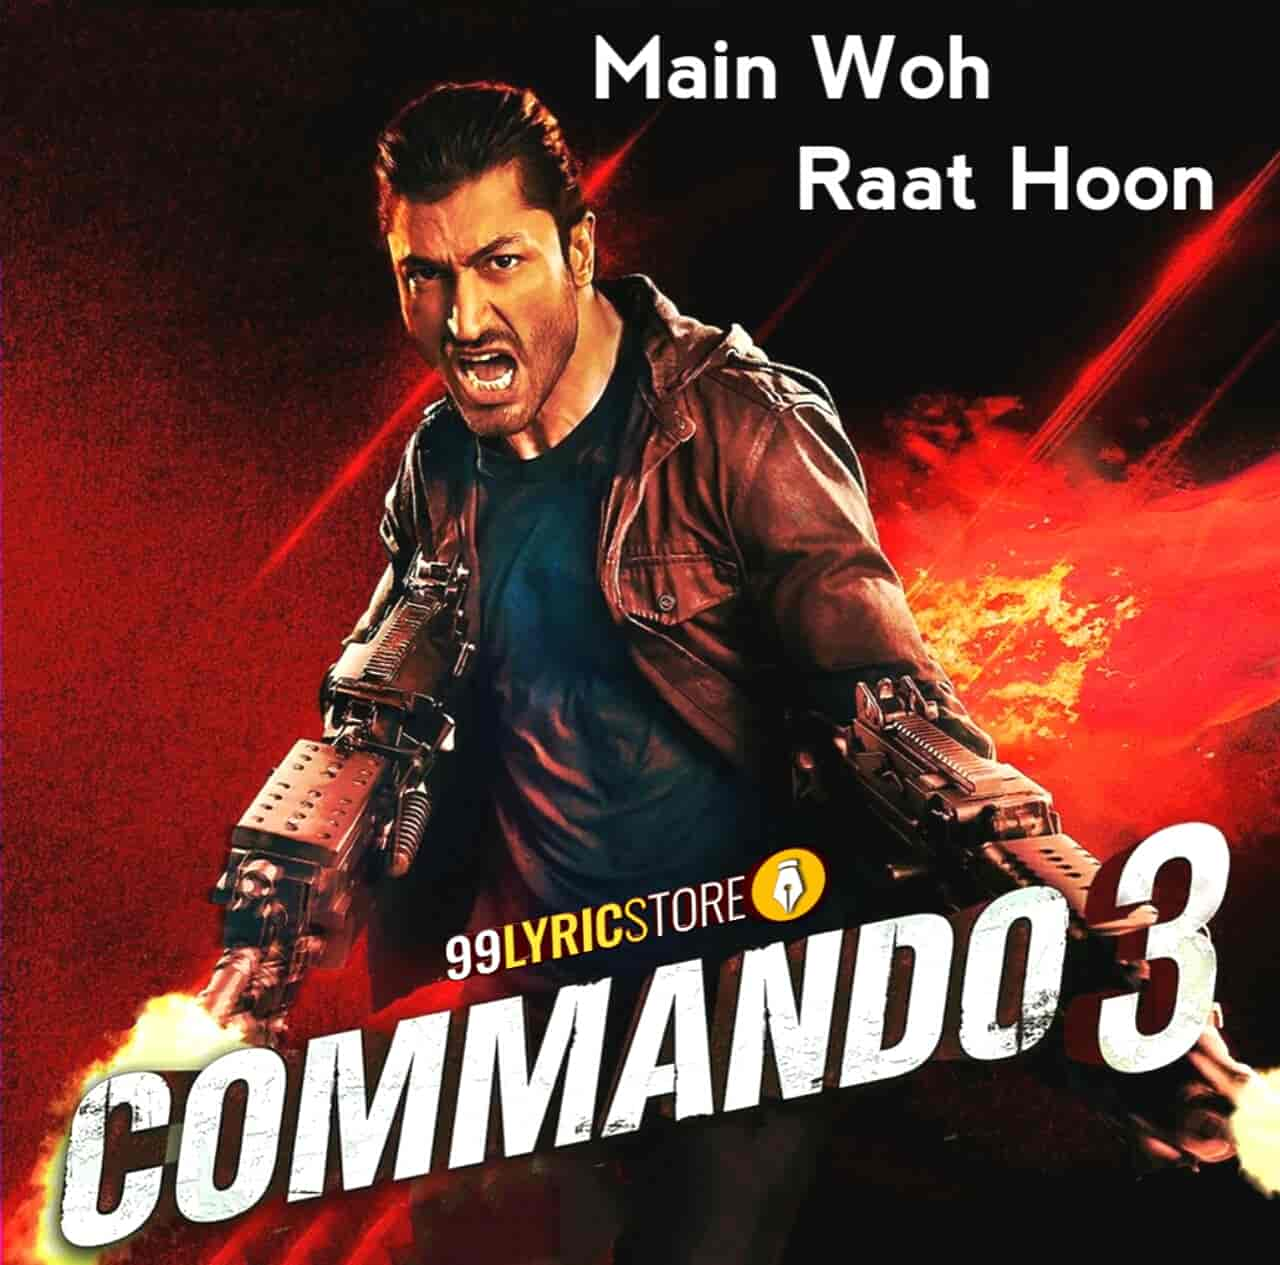 Main Woh Raat Hoon Commando 3 Song Images